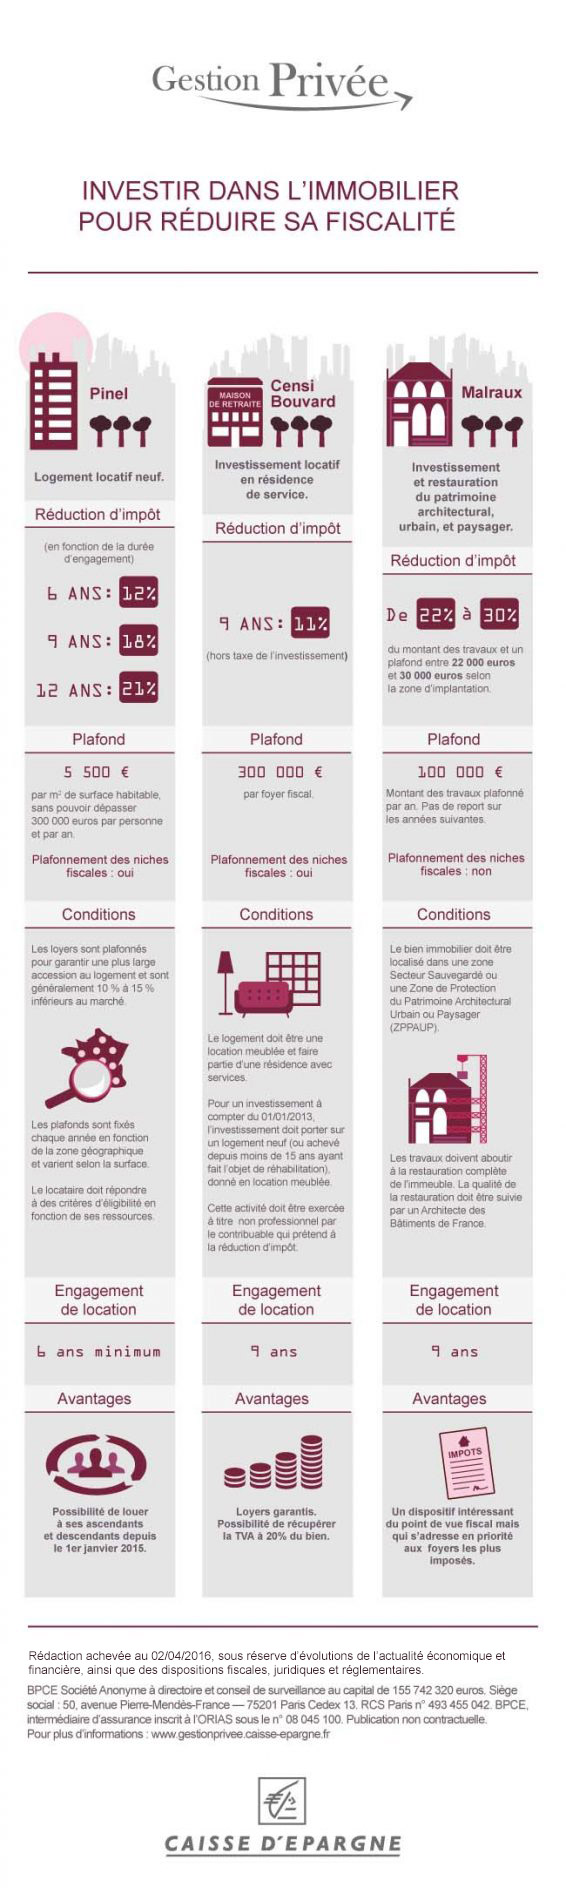 dispositif fiscalite immobilier infographie